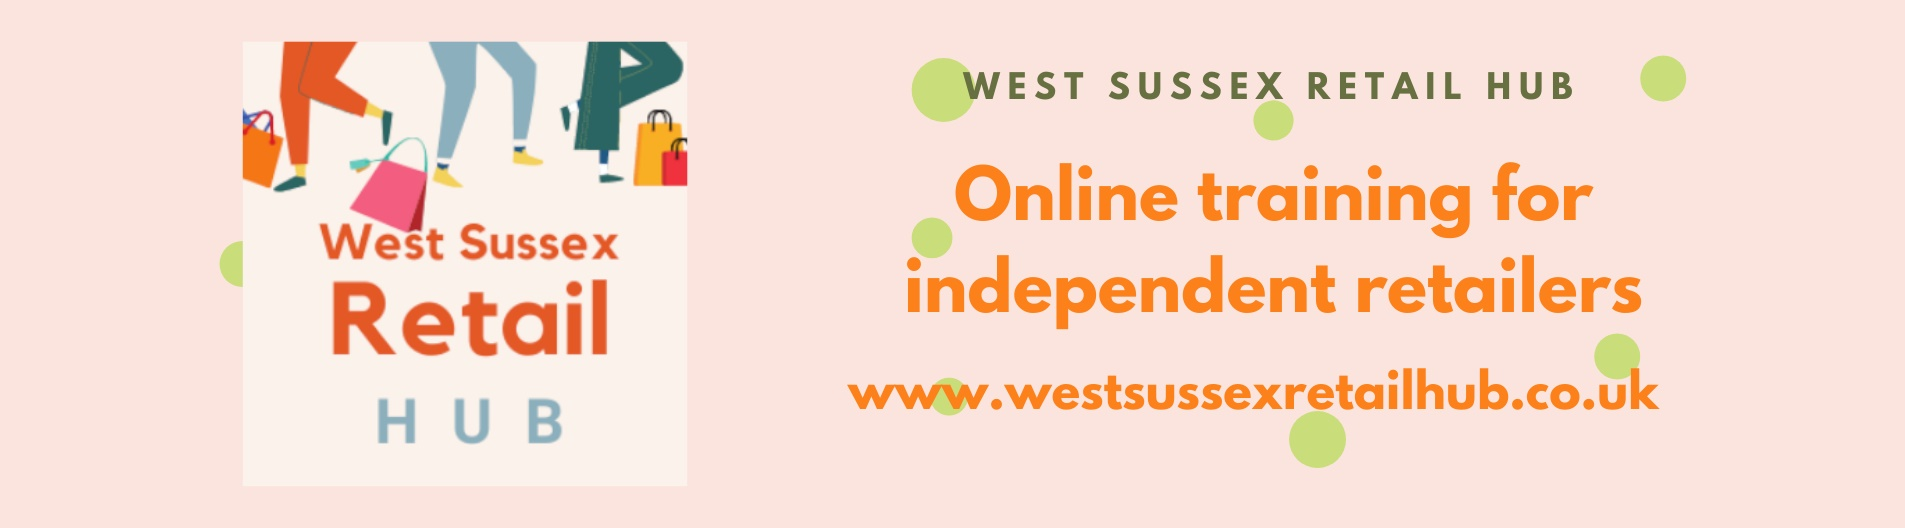 Free online training for independent retailers